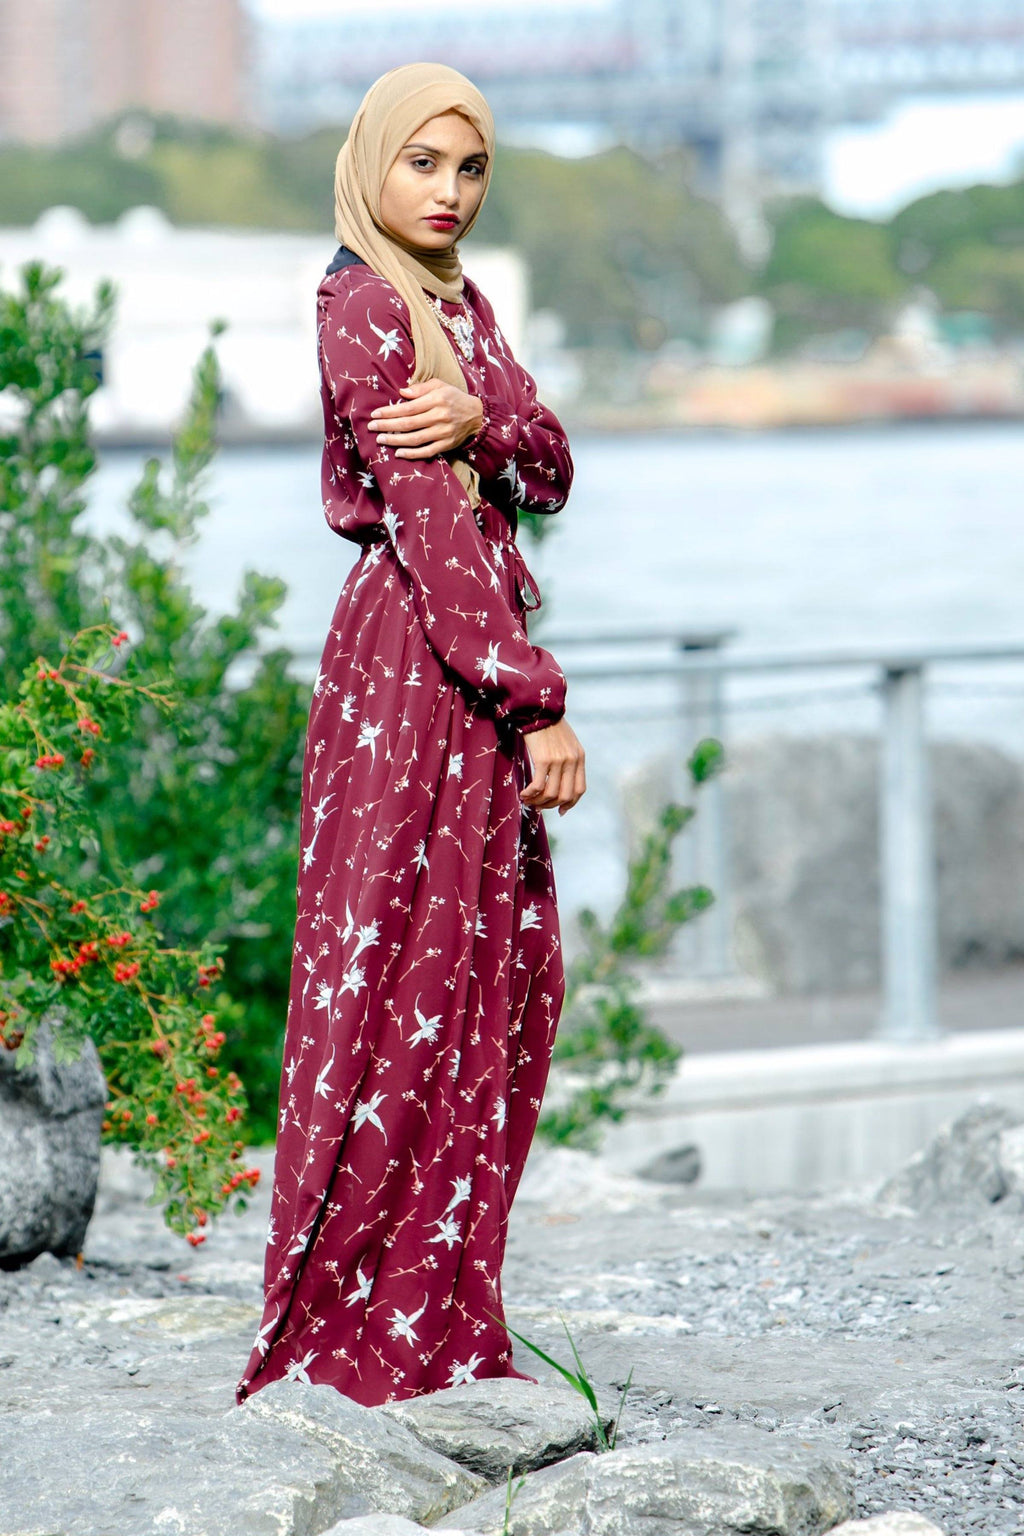 Maroon Floral Drawstring Maxi Dress - CLEARANCE - Abaya, Hijabs, Jilbabs, on sale now at UrbanModesty.com